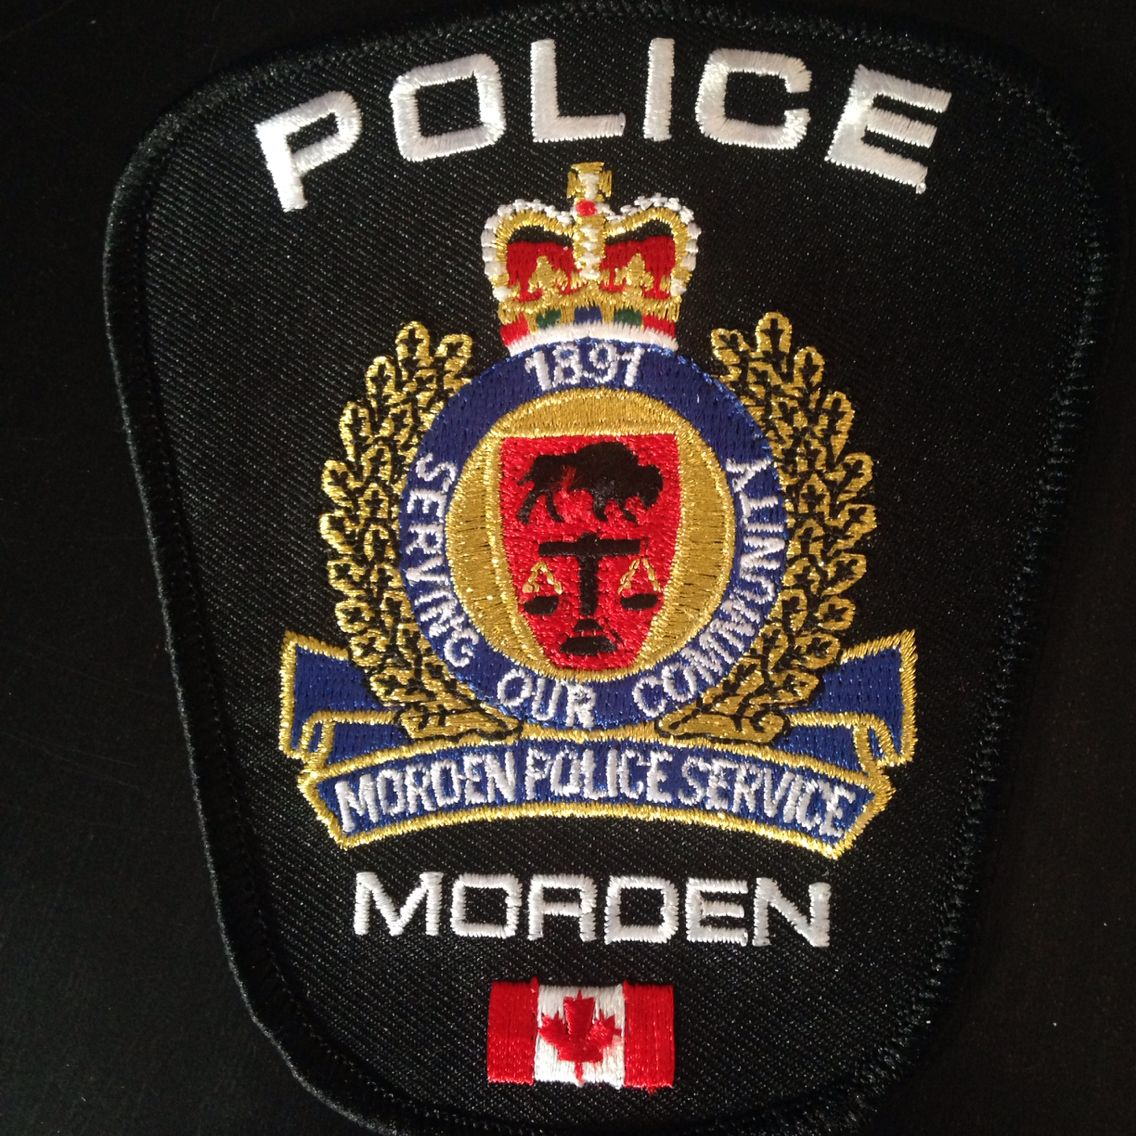 Morden Manitoba Police Current Issue 2015 Police badge